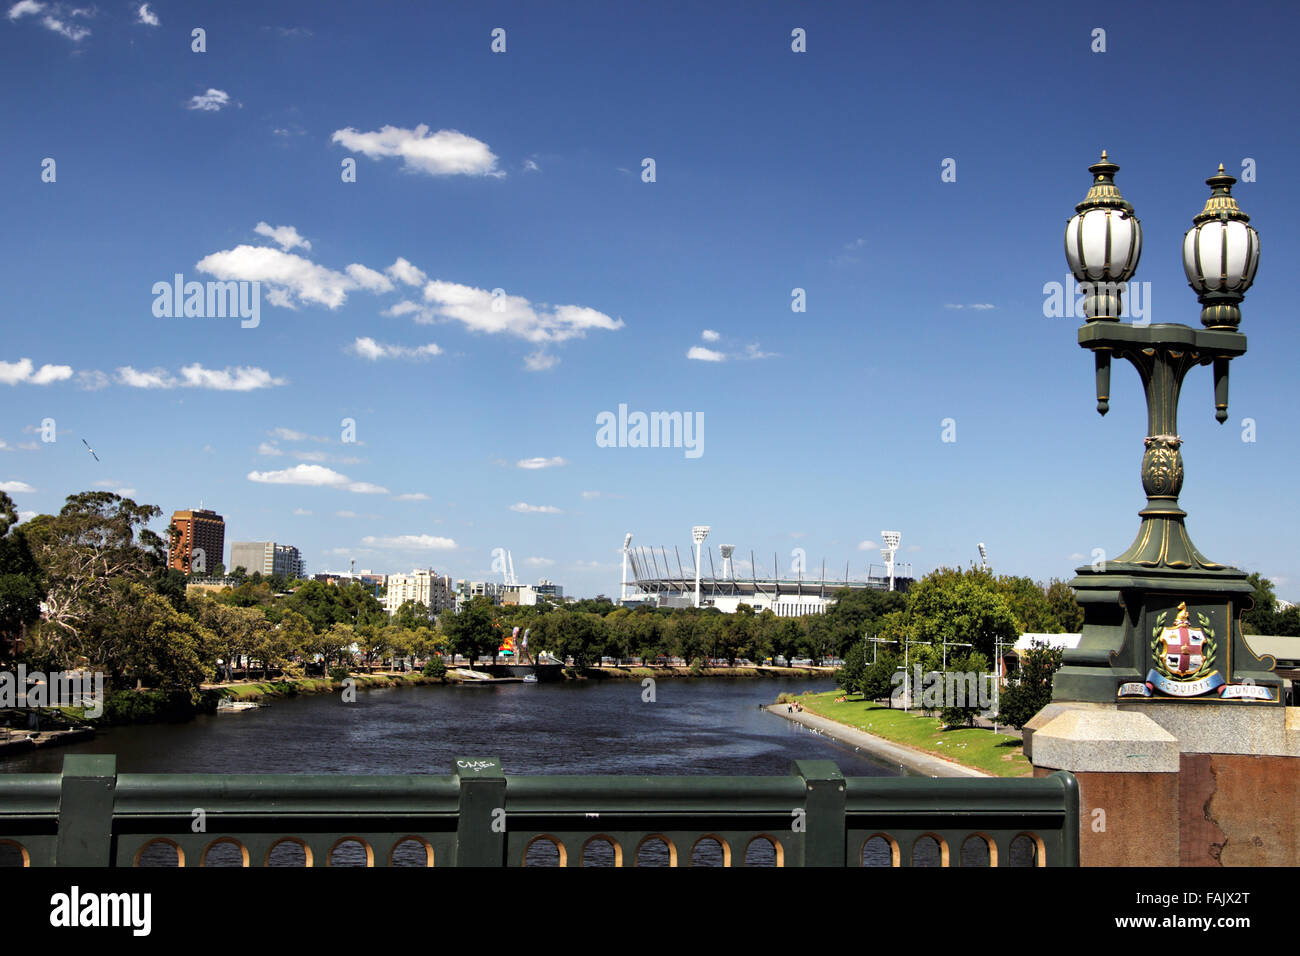 Yarra River and Melbourne Cricket Ground in downtown Melbourne, Victoria, Australia, on a sunny summer day. Stock Photo